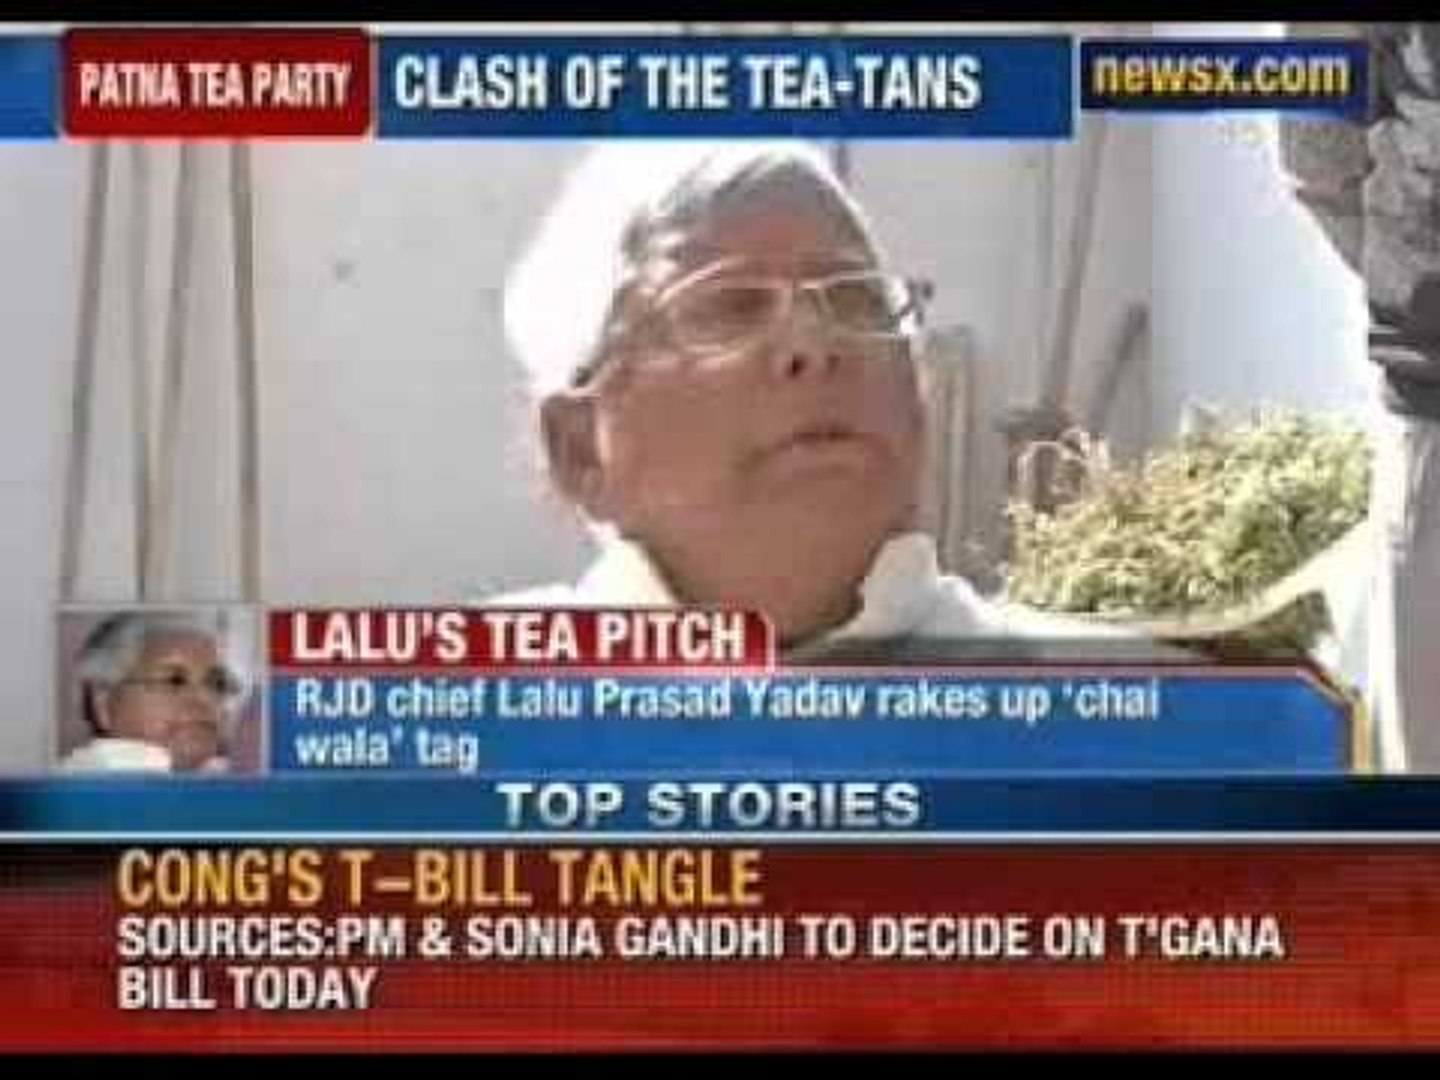 Lalu Prasad earlier attacked Narendra Modi by calling him merchant of blood